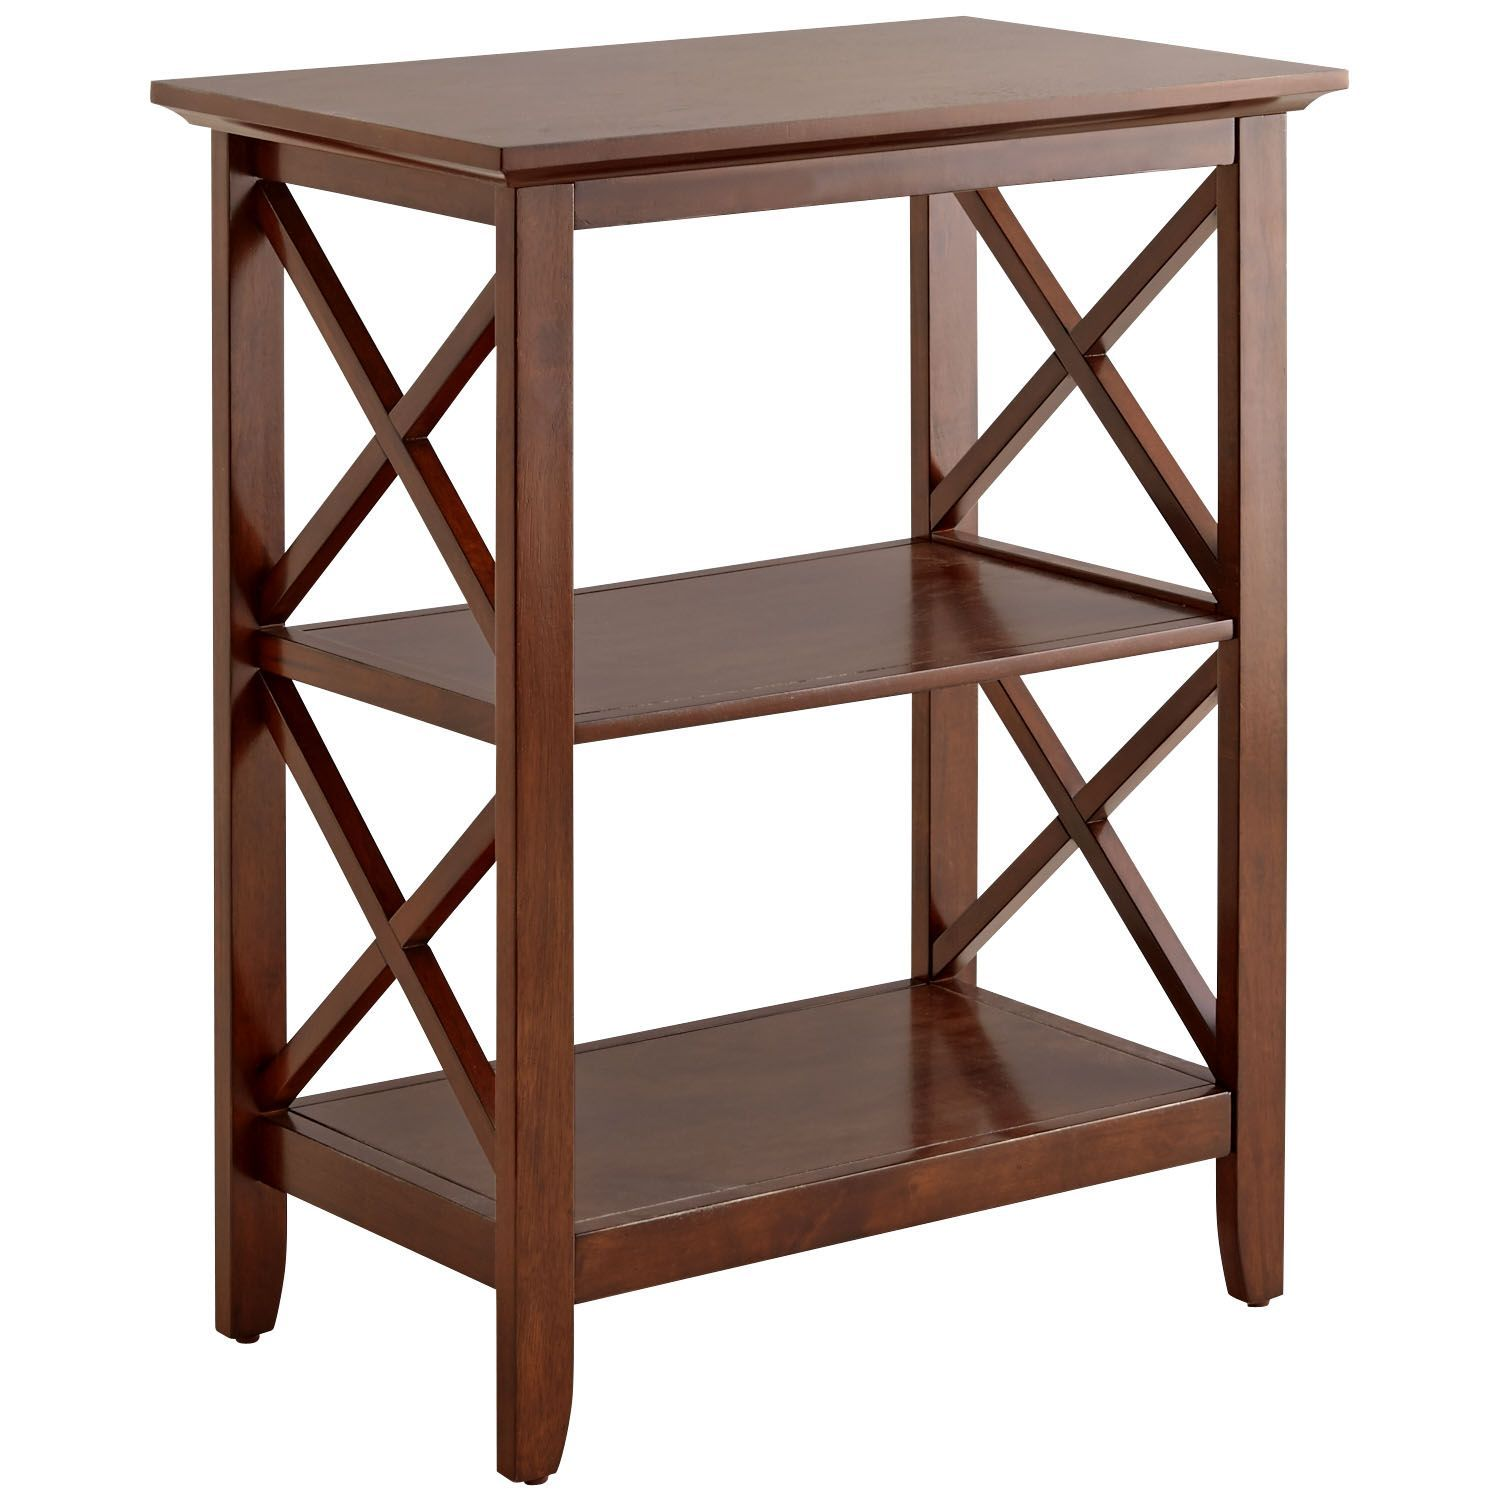 kenzie accent table mahogany brown tables threshold owings glass dining and chairs clearance target console yellow pier one seat cushions extra long tuscan hills asian lamp shade